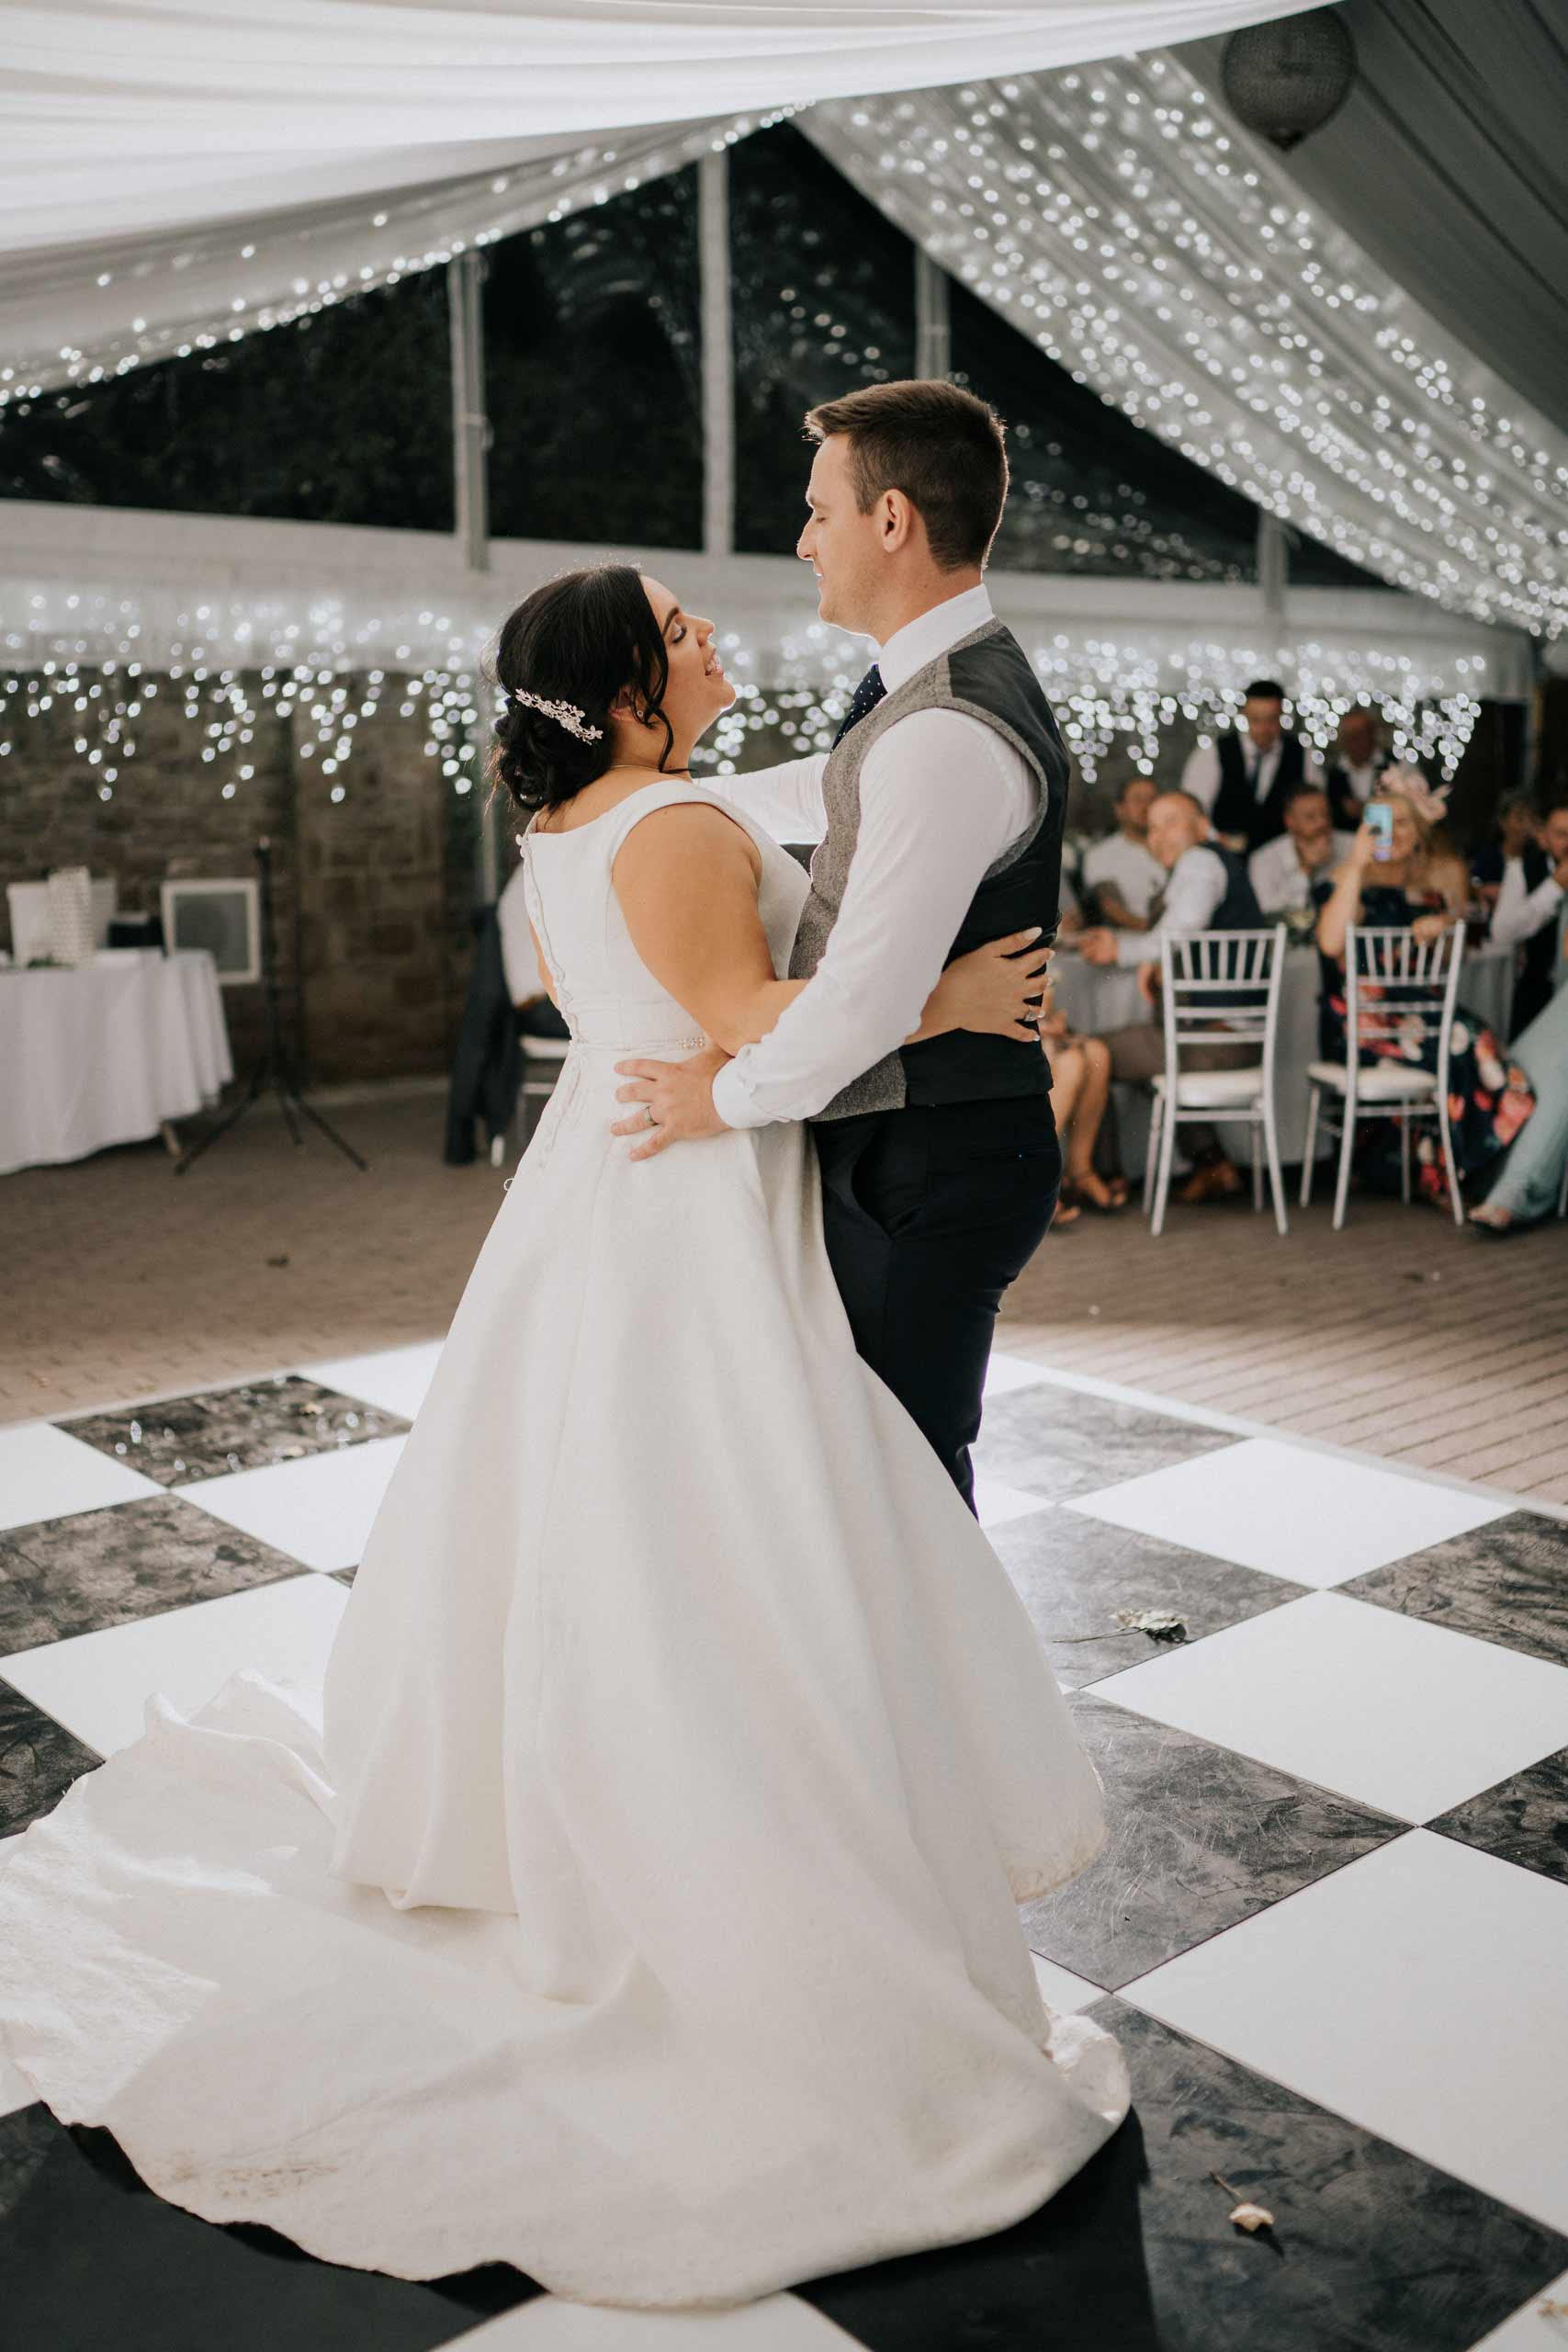 First dance bride and groom wedding photo